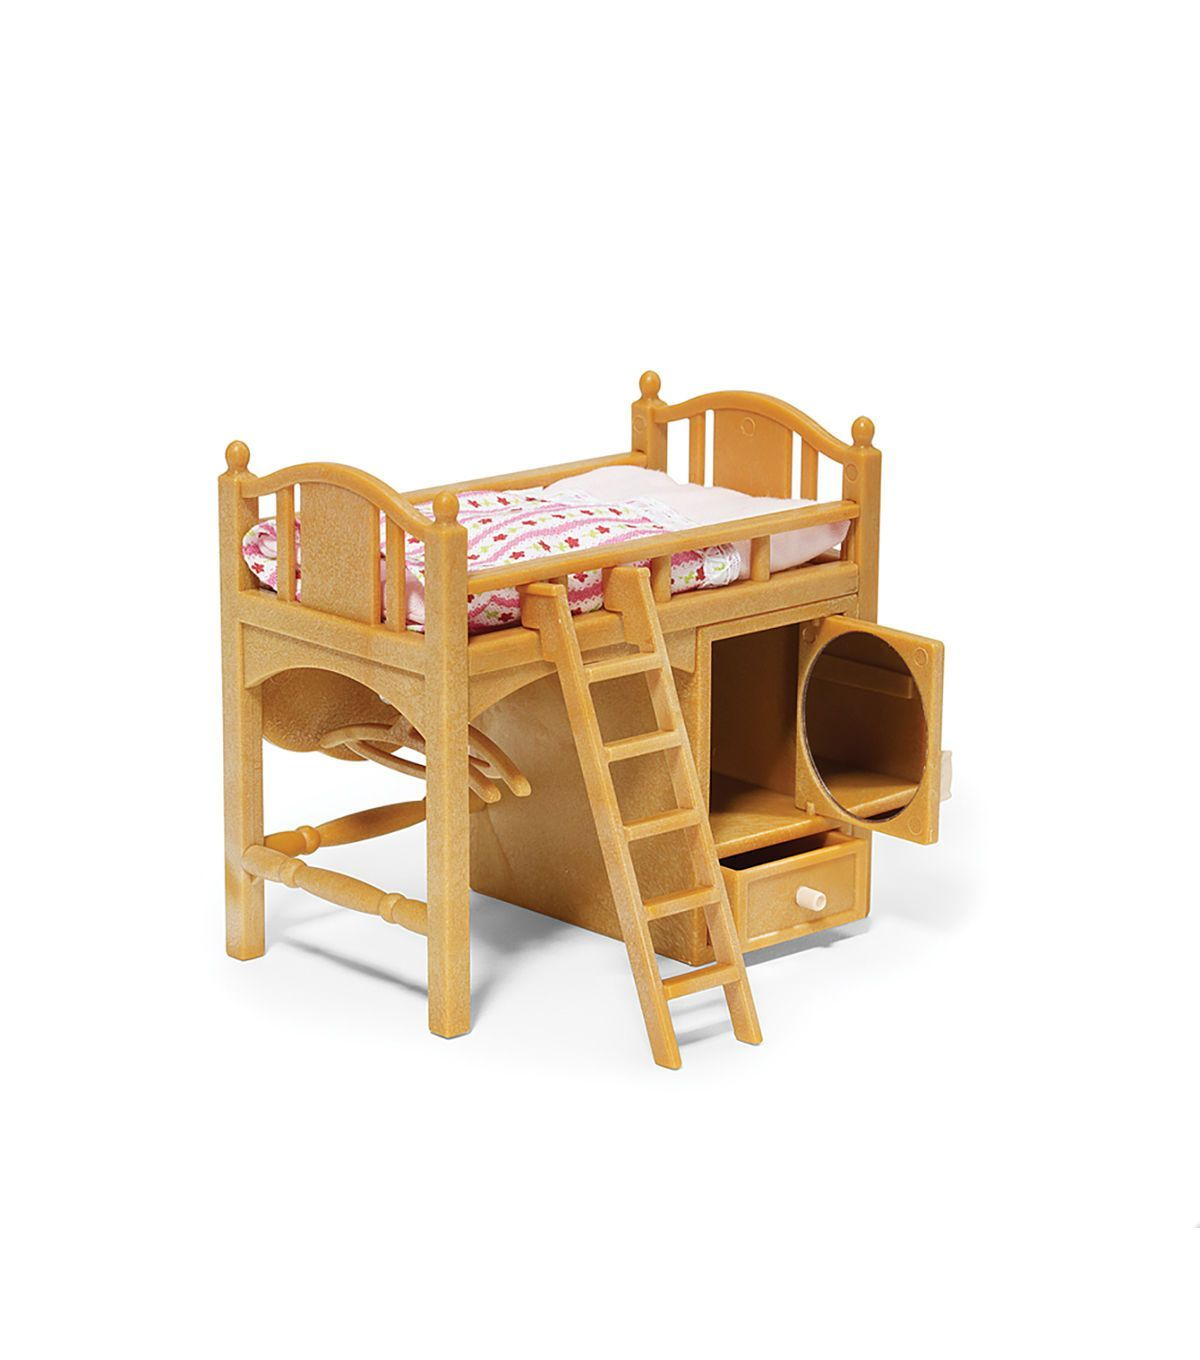 Calico Critters Sister S Loft Bed Joann Loft Bed Mattress Furniture Calico